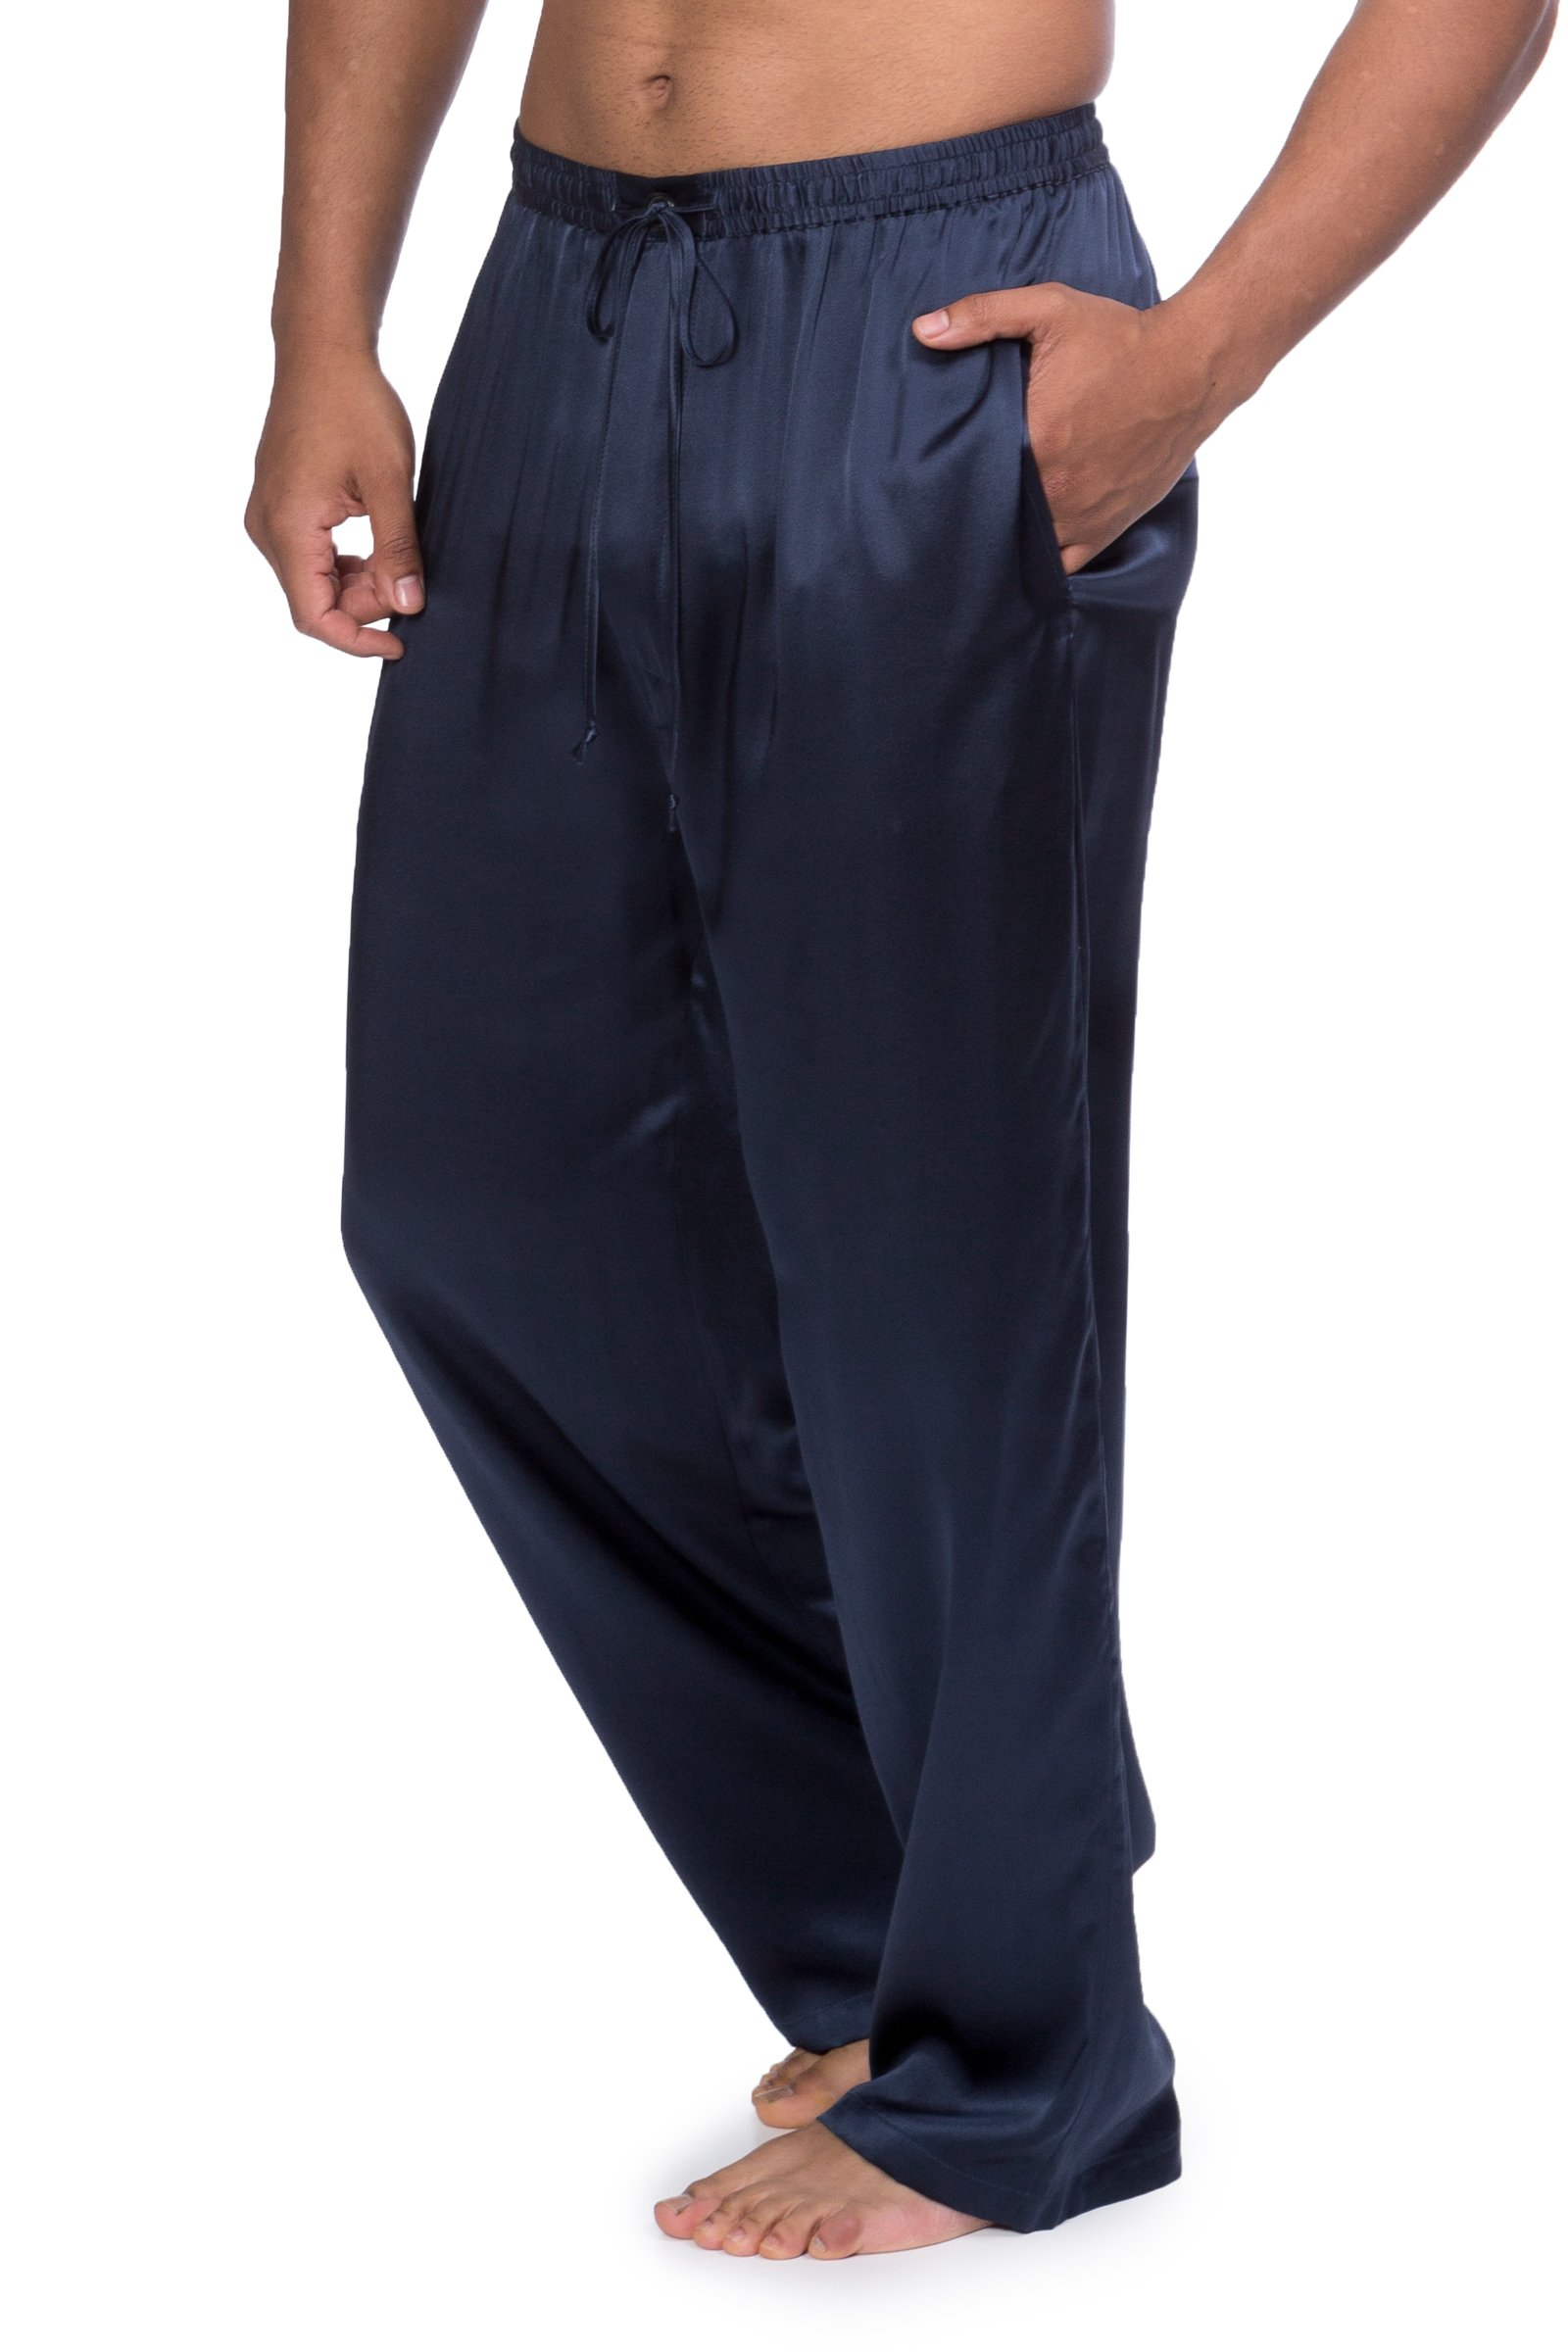 Men's Luxury Silk Pajama Pants (Hiruko, Midnight Blue, X-Large) Unique Valentine's Day Gifts for Him MS0201-MID-XL by TexereSilk (Image #5)